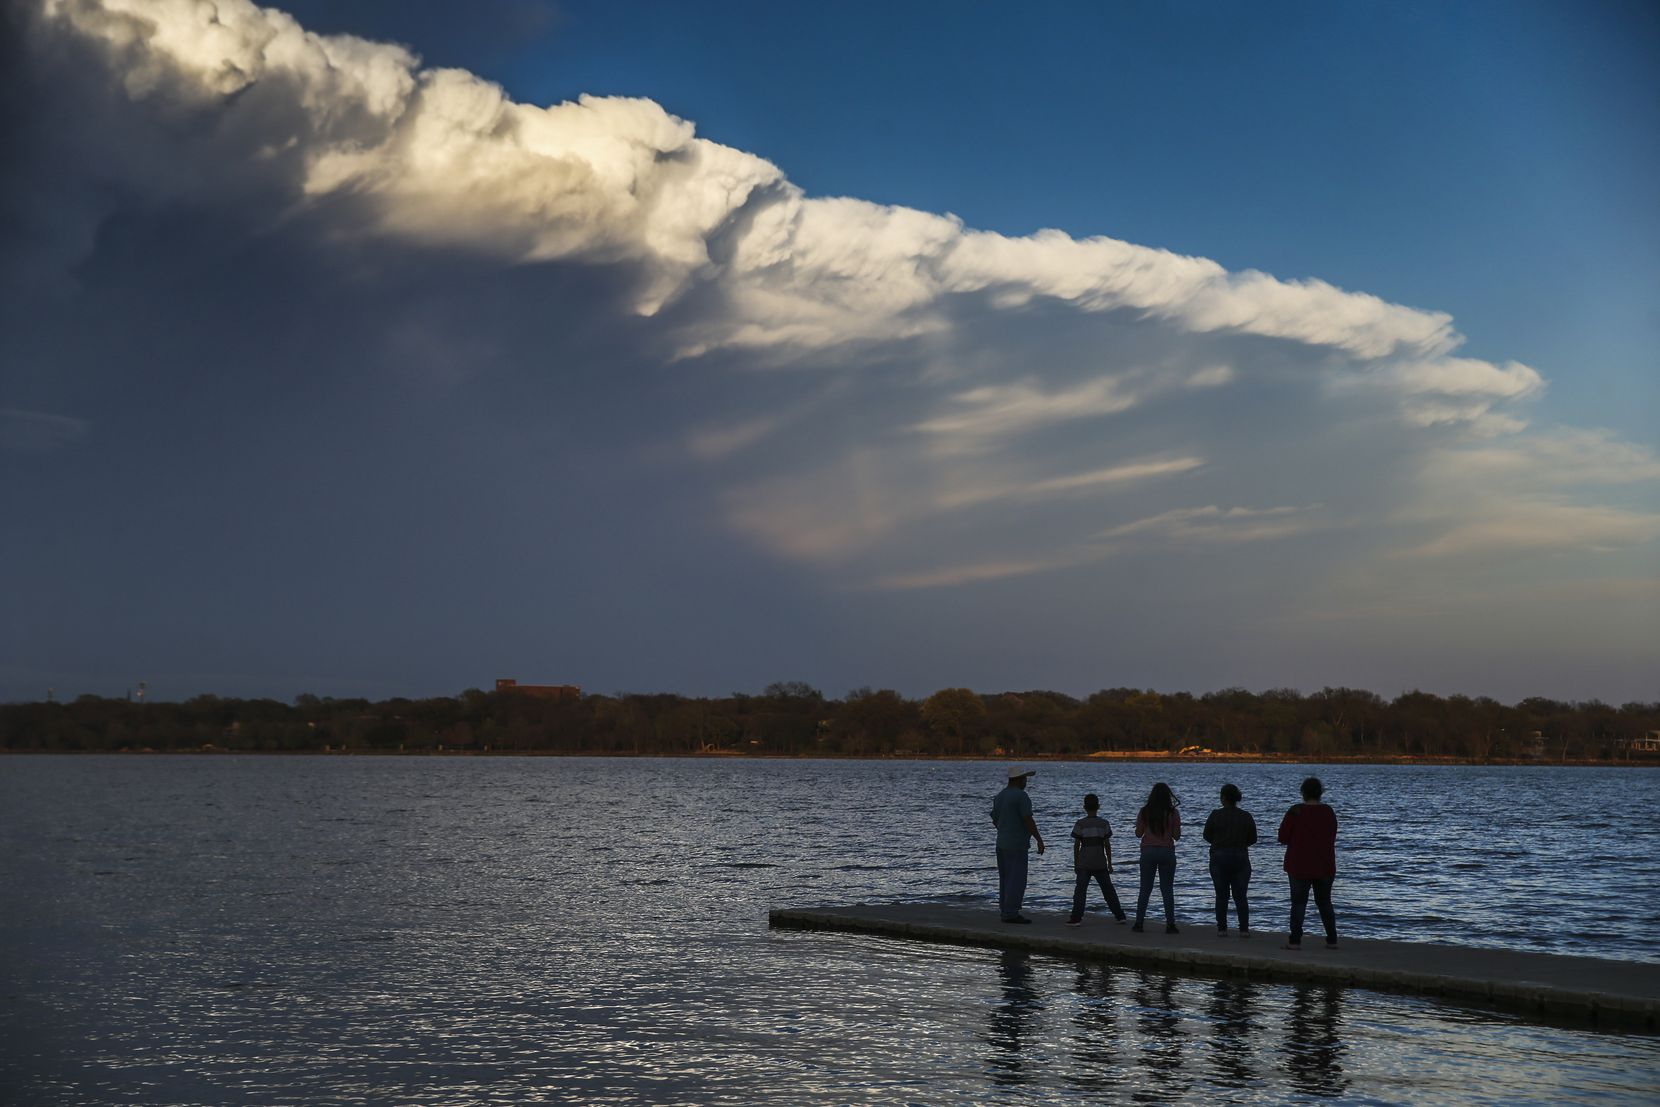 People watch passing clouds from a dock at White Rock Lake on Sunday afternoon, March 24, 2019.